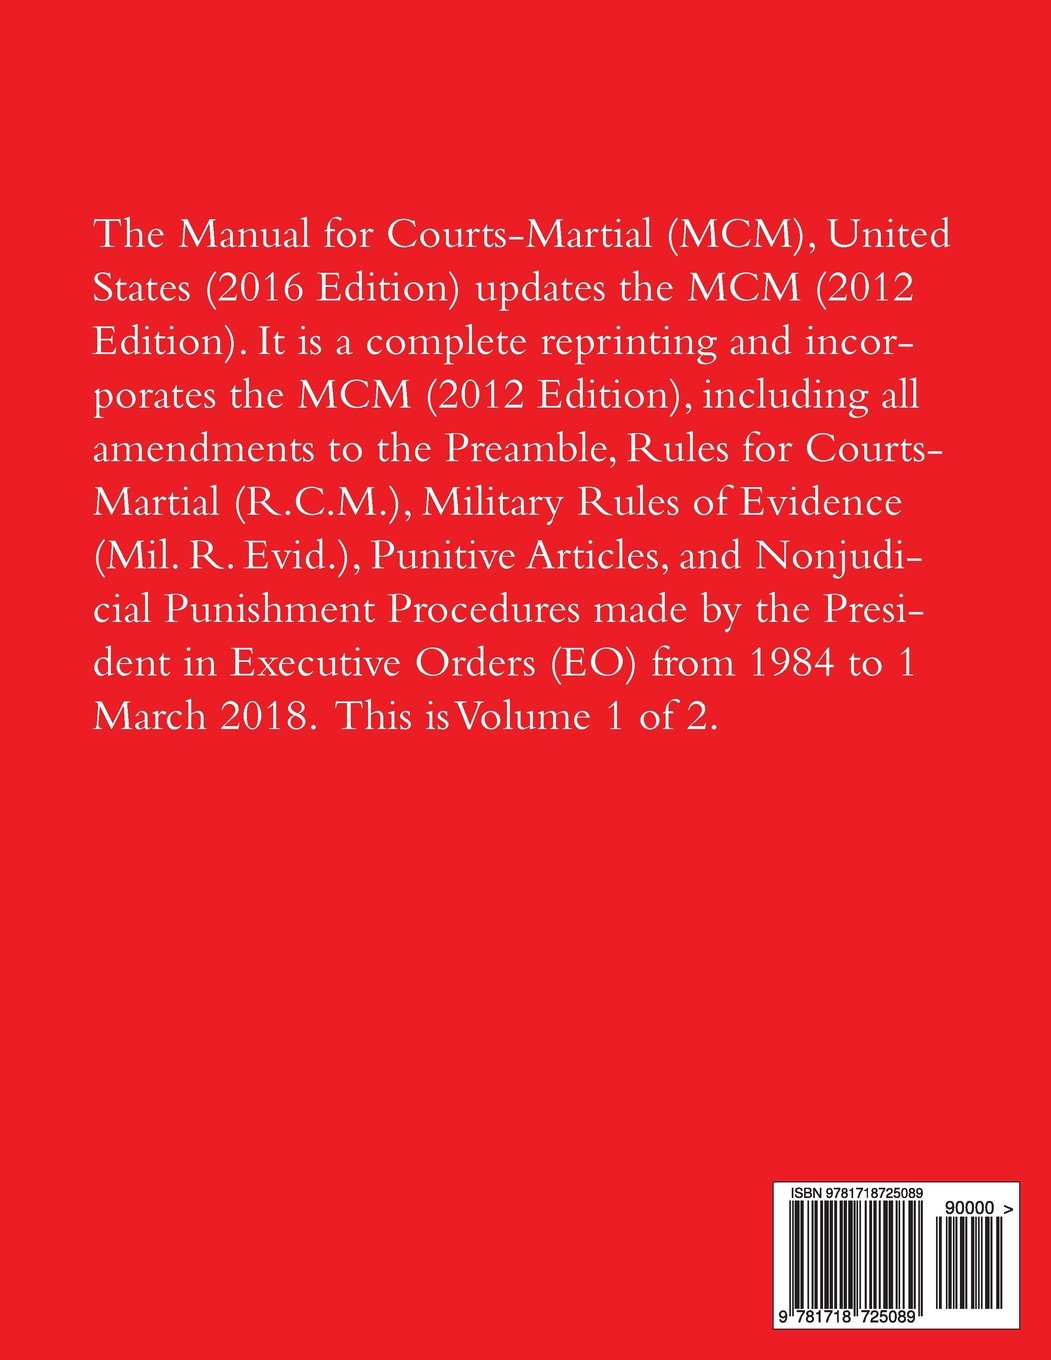 Manual for Courts-Martial: 2018 (Volume 1): Joint Service Committee on  Military Justice: 9781718725089: Amazon.com: Books